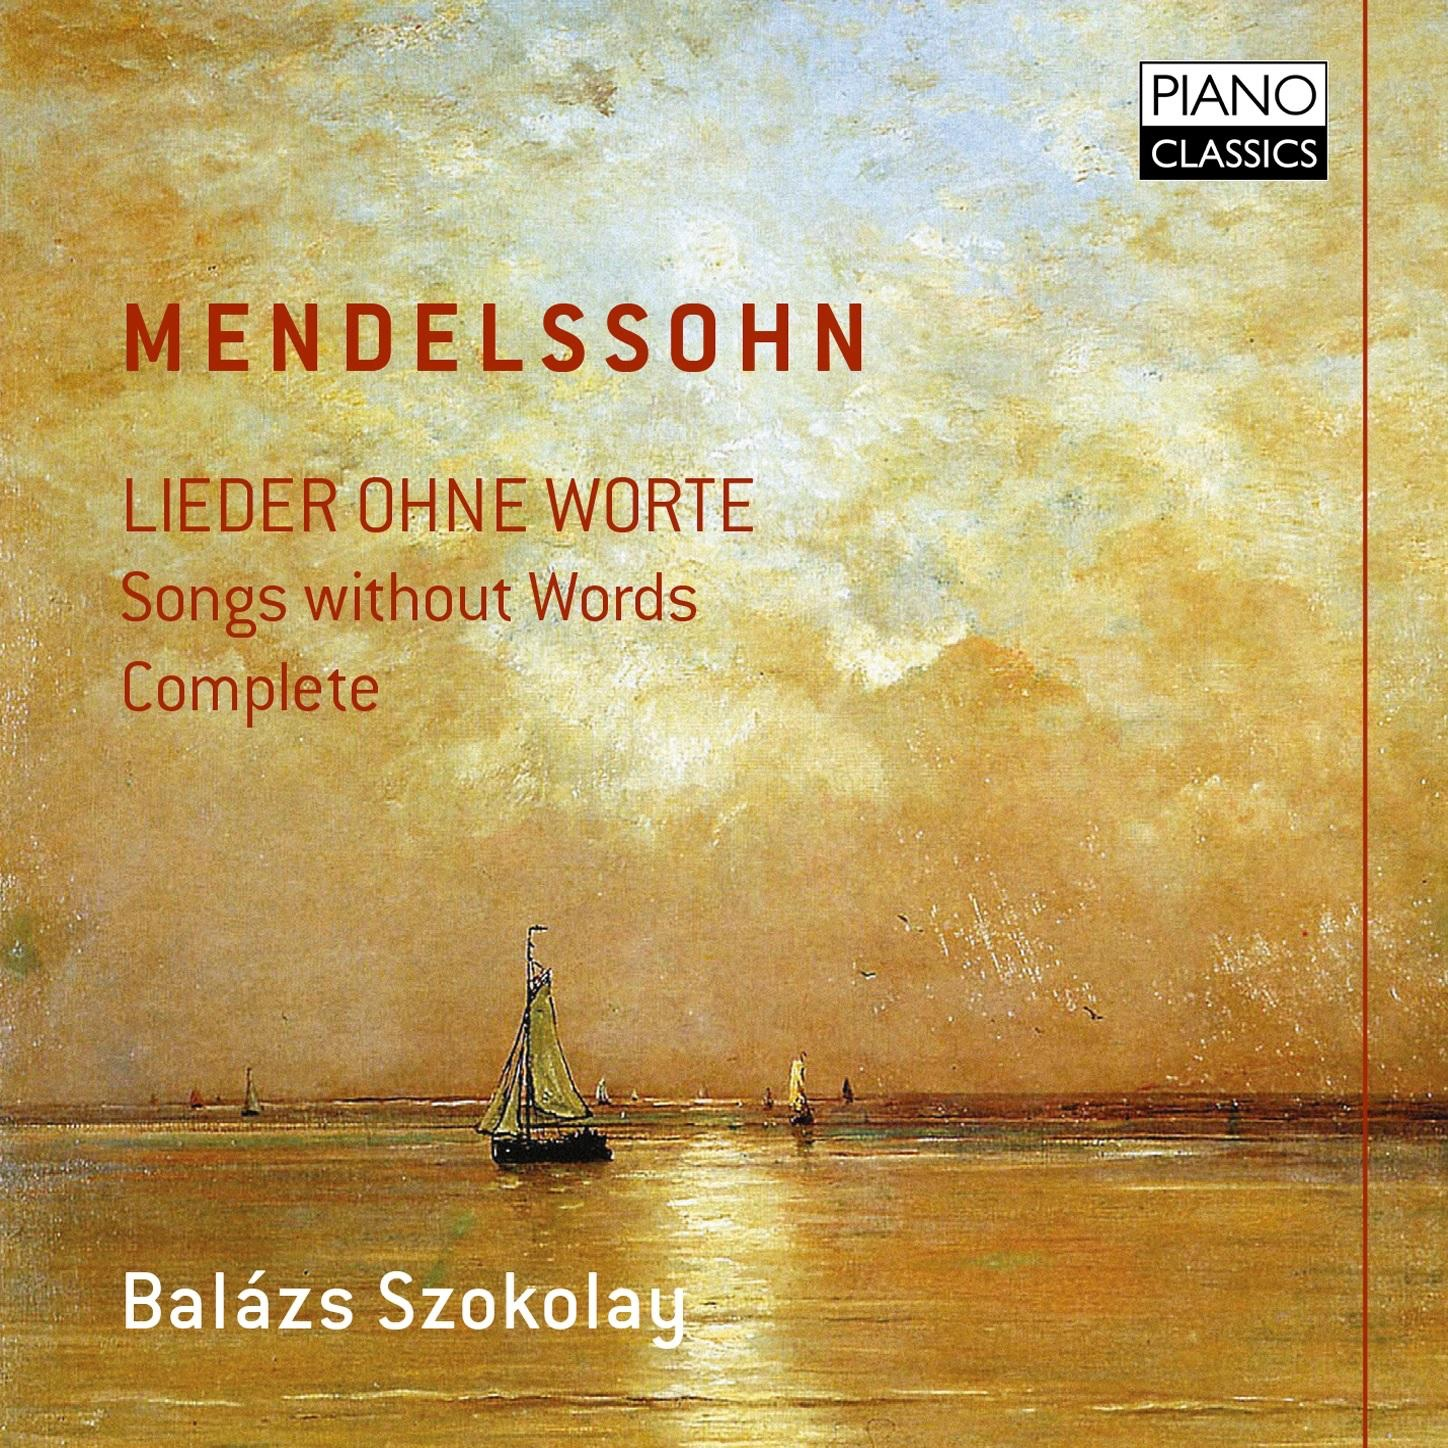 MP3 Songs Online:♫ Lieder ohne Worte, Op. 62: II. Allegro con fuoco in B-Flat Major - Balázs Szokolay album Mendelssohn: Lieder ohne Worte (Complete). Classical,Music listen to music online free without downloading.